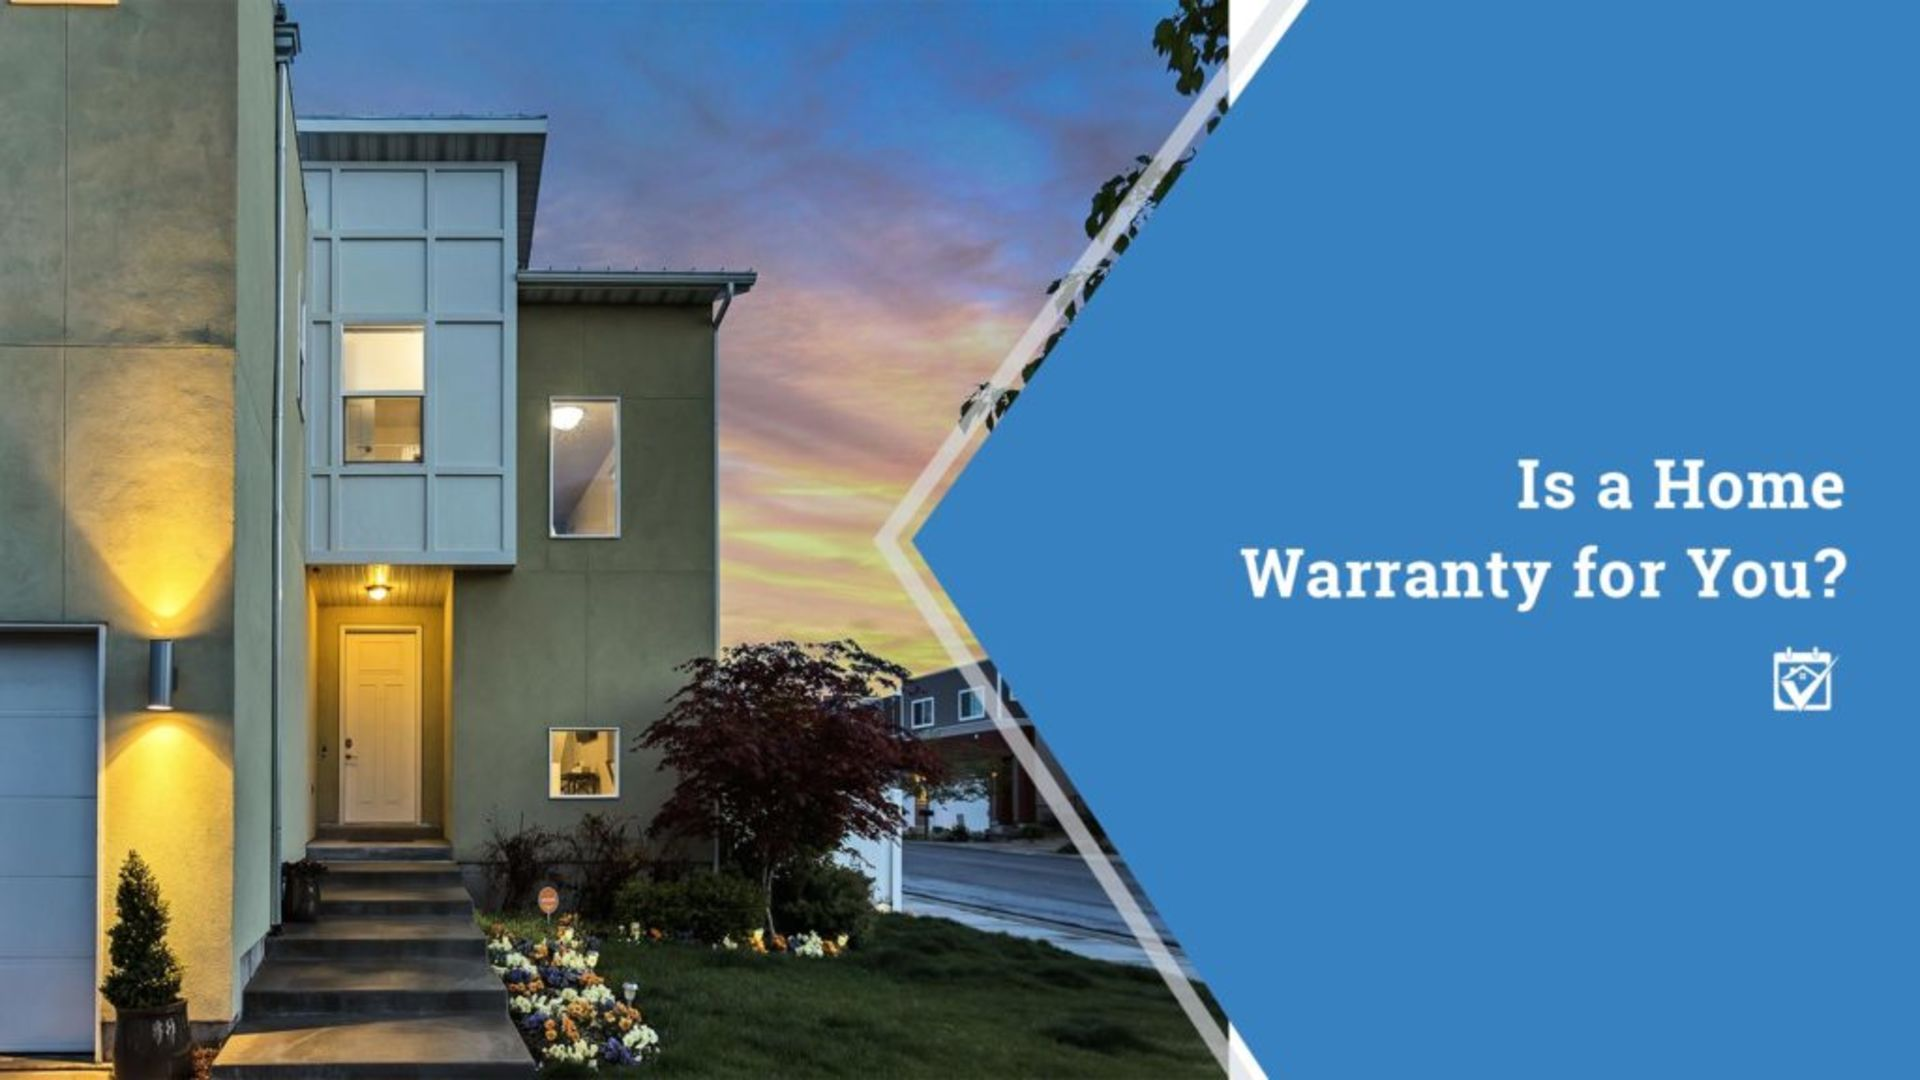 Should You Consider a Home Warranty?